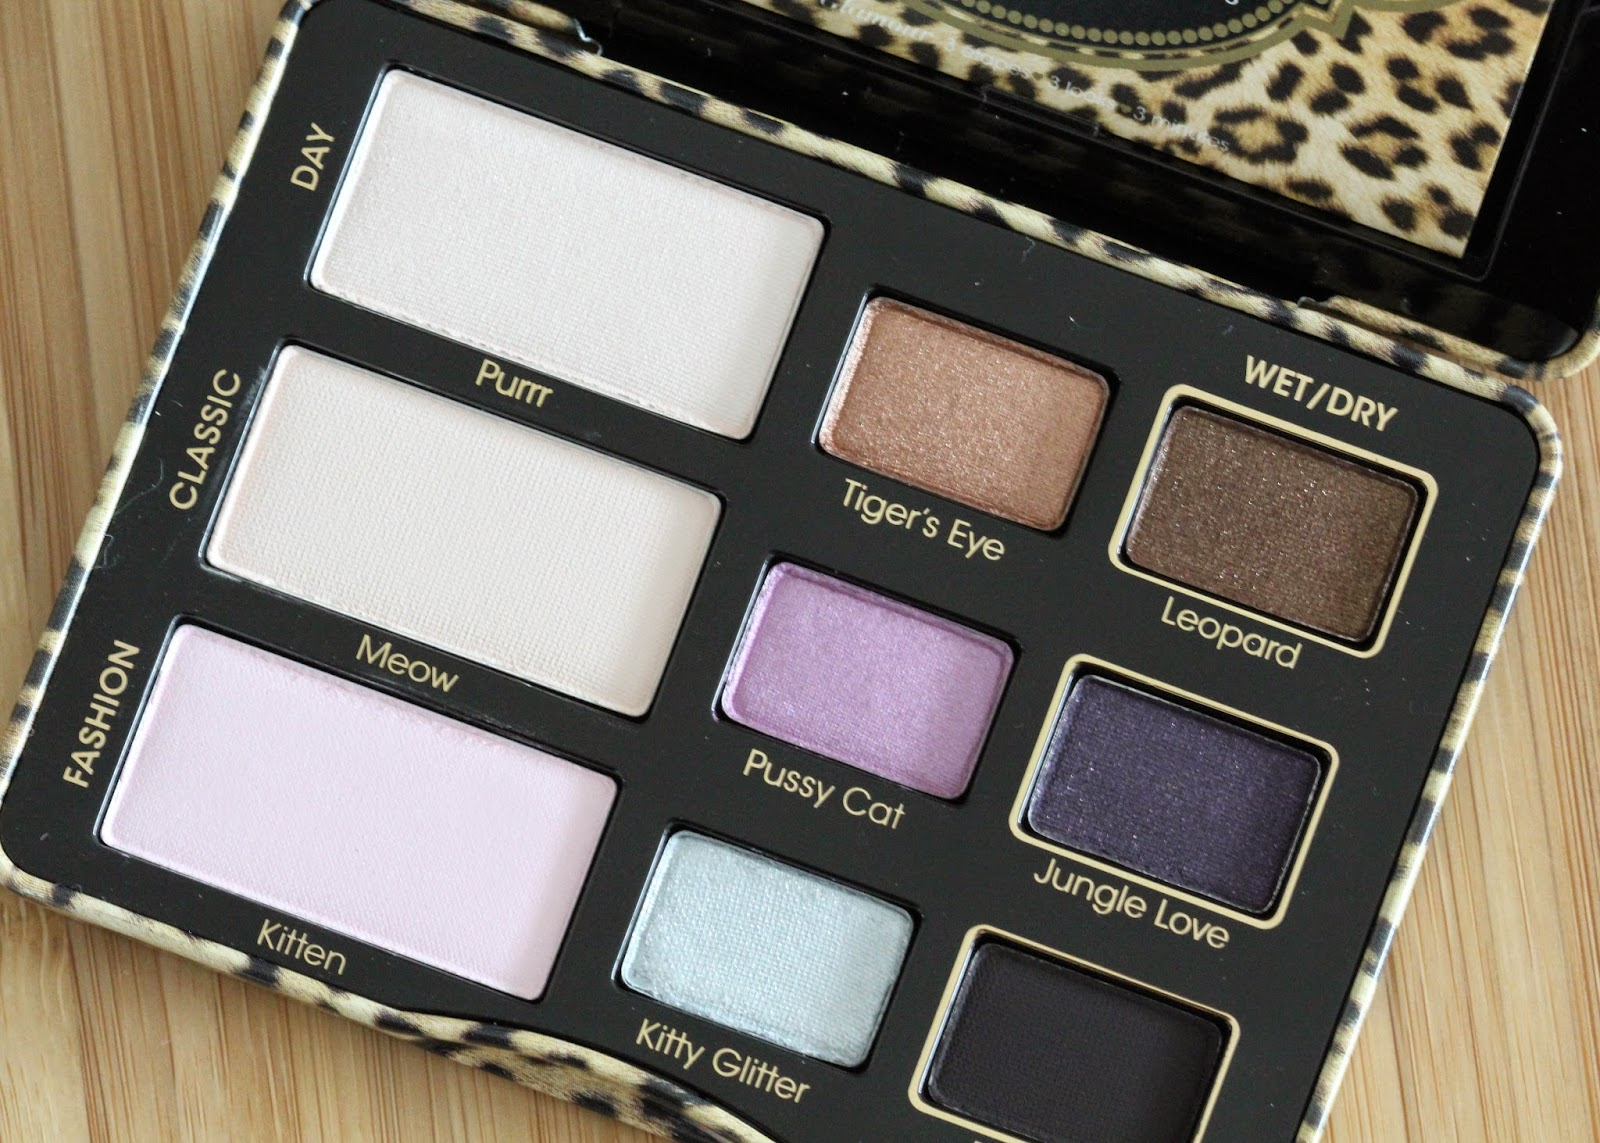 New from Too Faced: Cat Eyes Palette